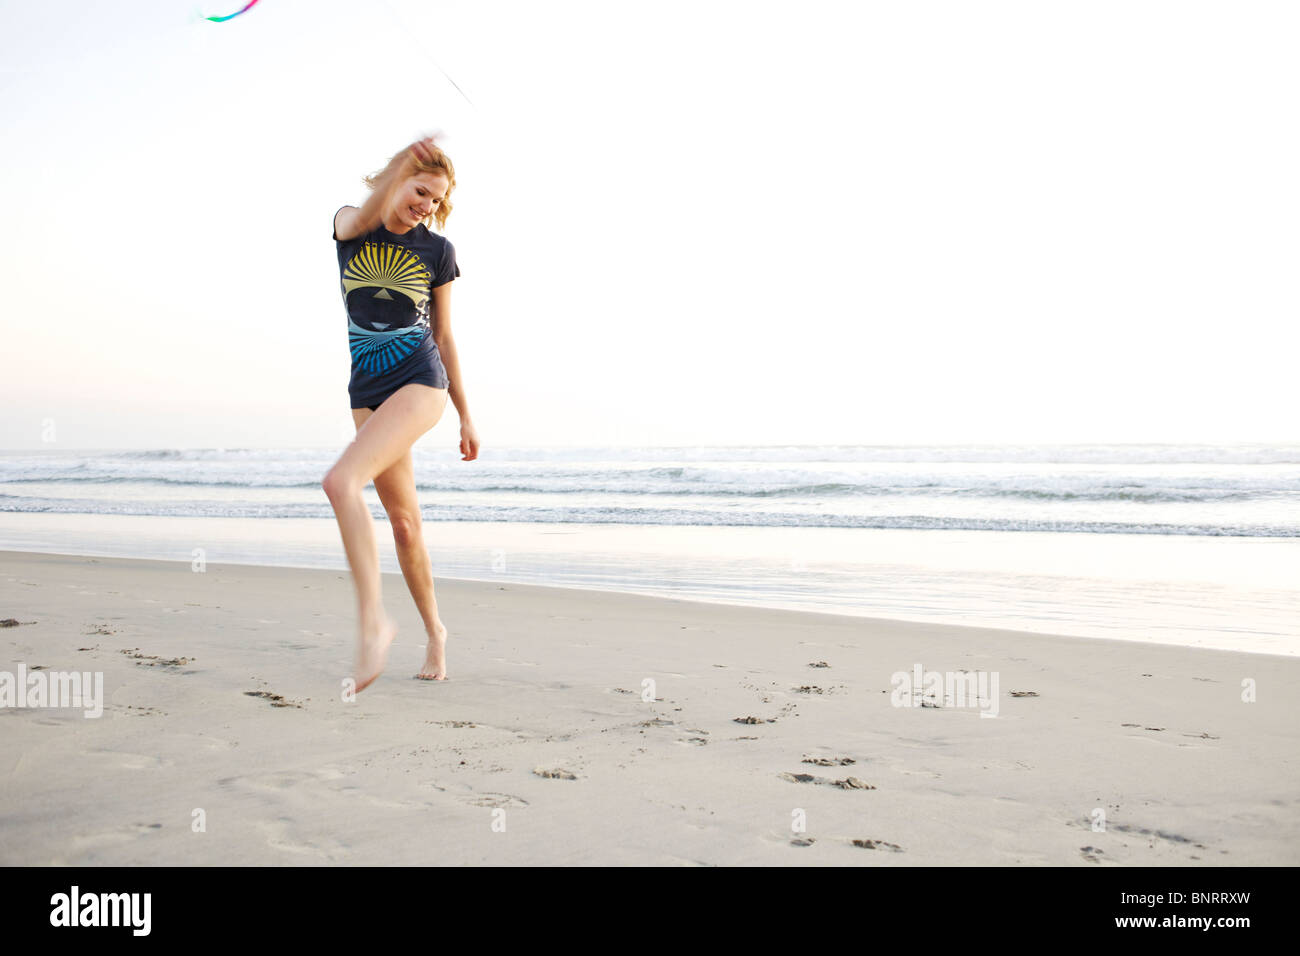 Young female plays with a colorful ribbon at the beach. - Stock Image